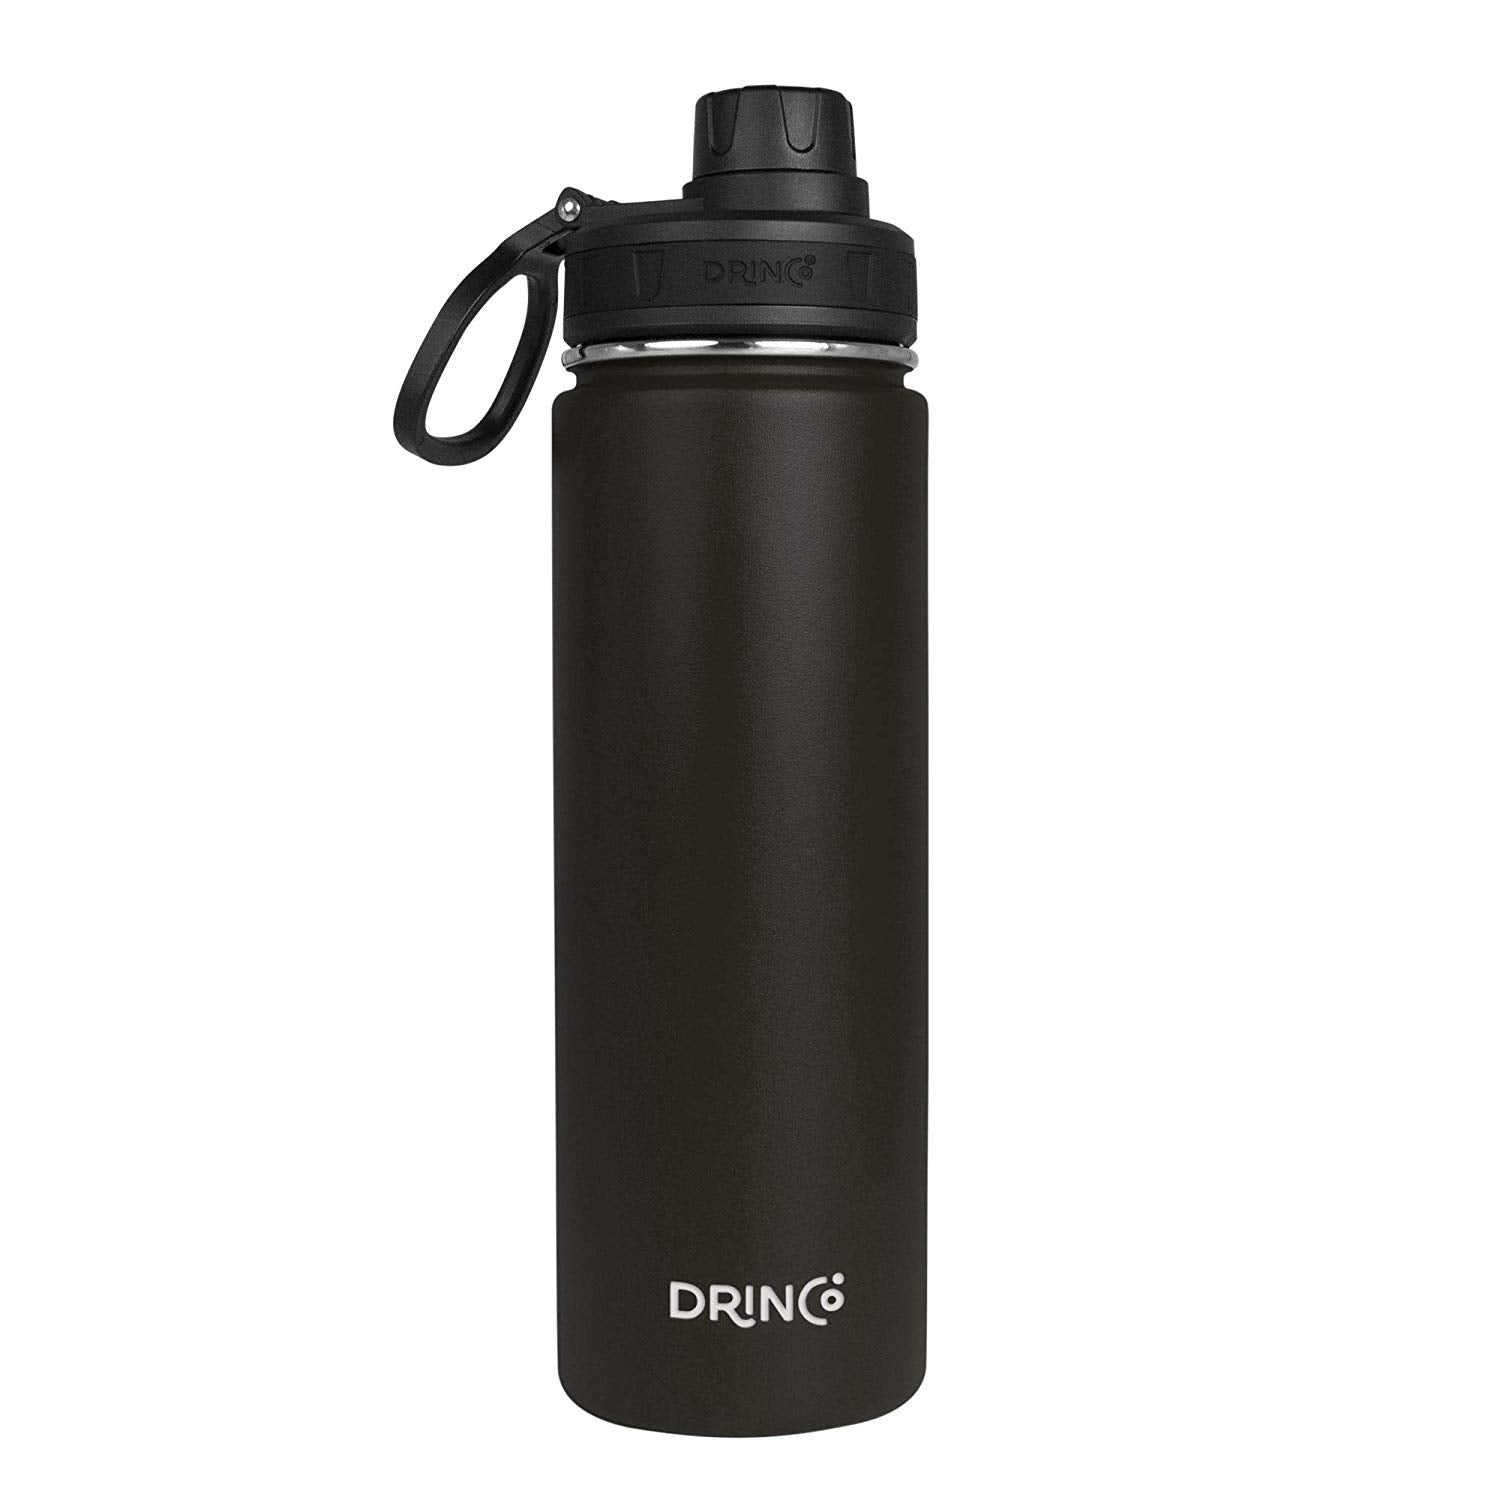 DRINCO® 20oz Stainless Steel Sport Water Bottle - Black